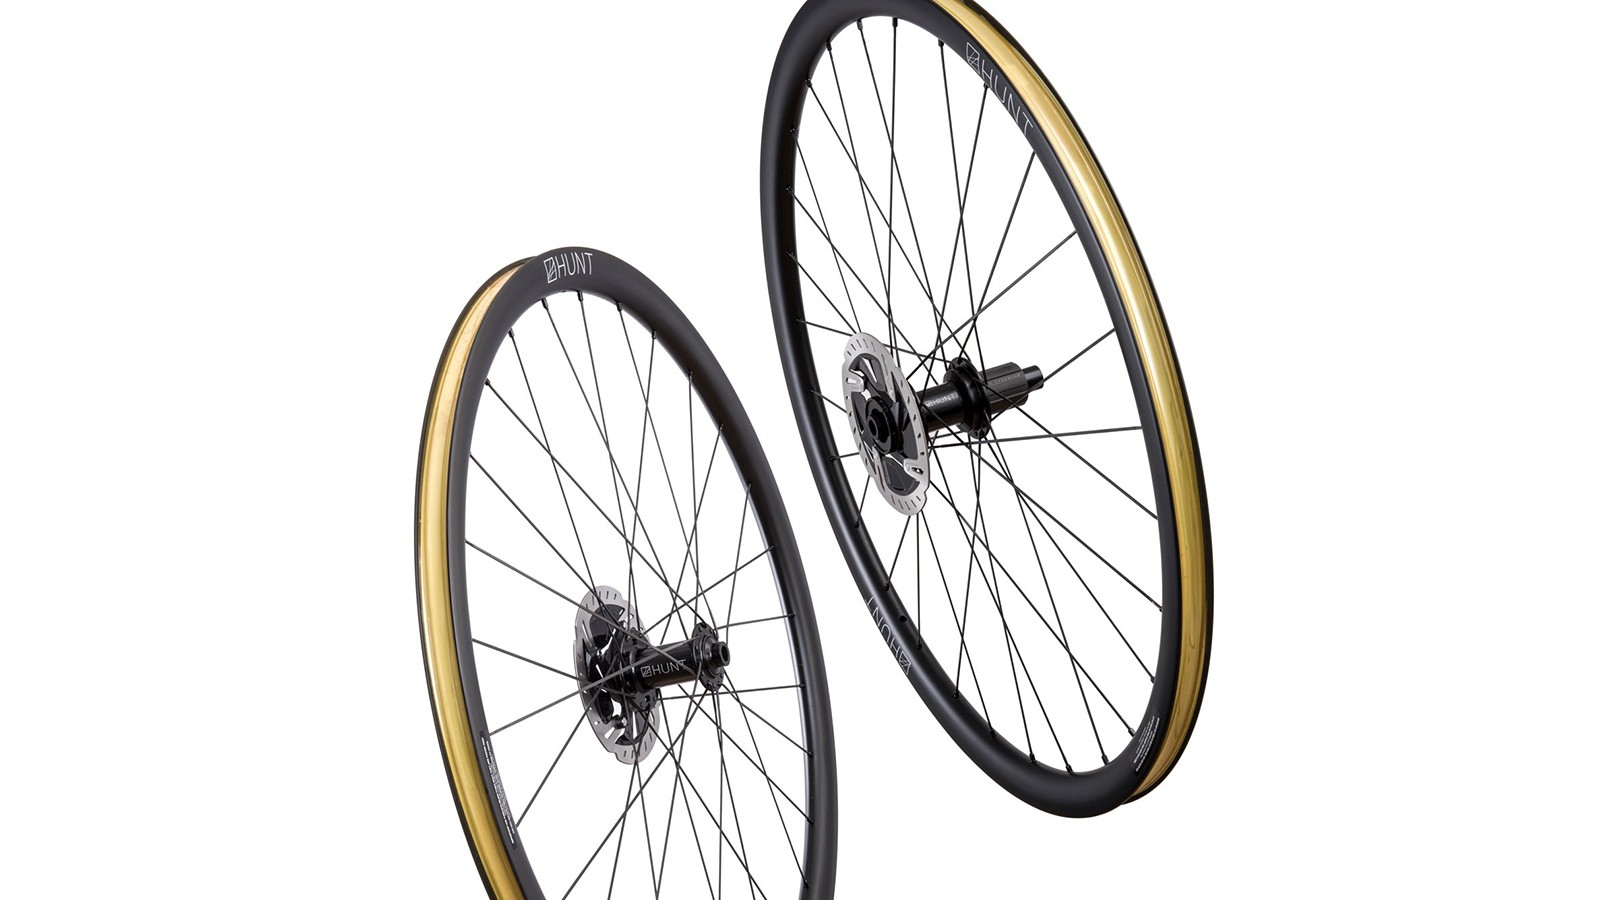 The new Hunt 30 Carbon Dynamo Disc wheelset